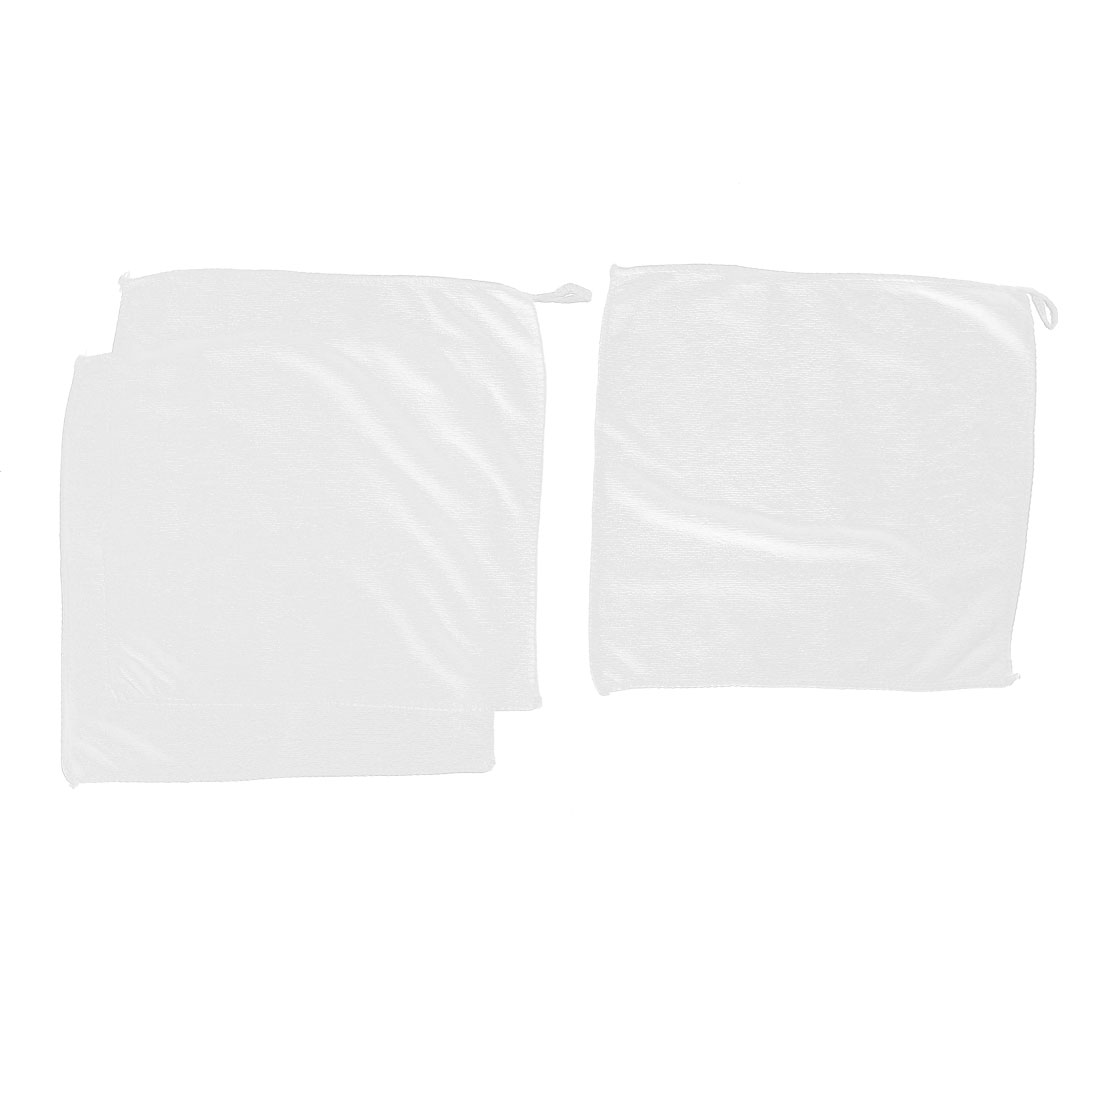 Home Water Absorbent Drying Towel Washcloth 30cm x 30cm White 3pcs